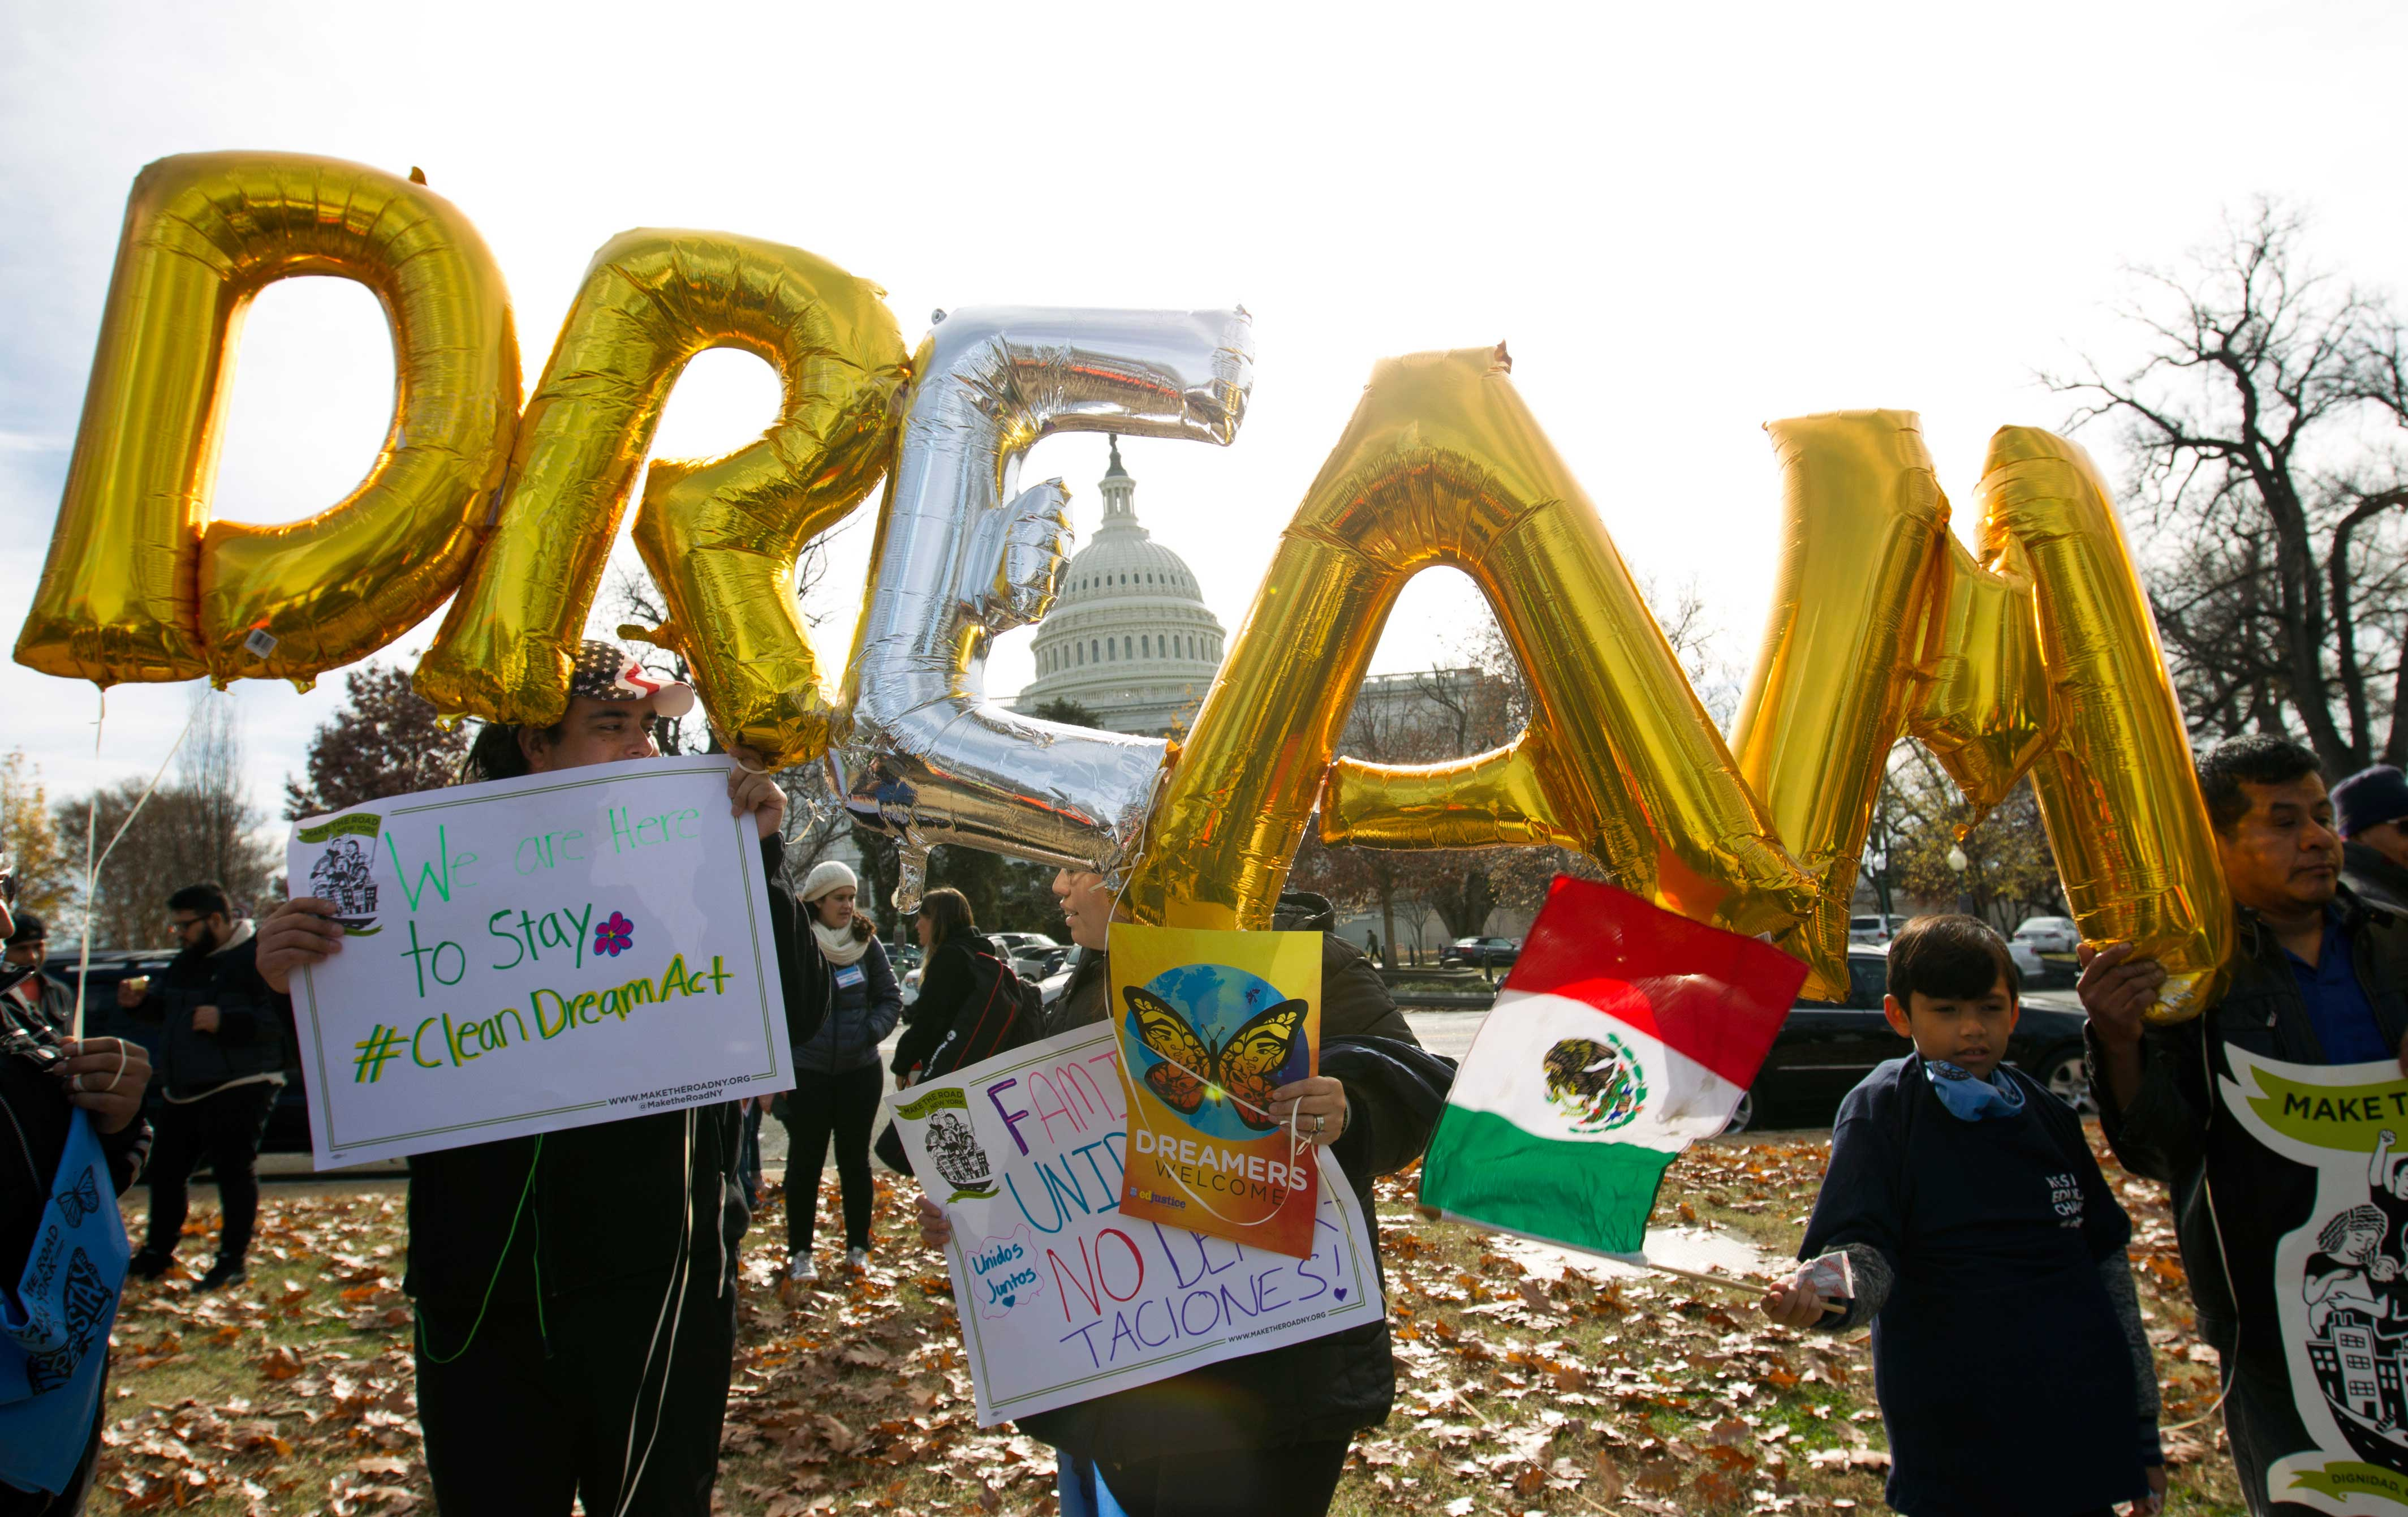 Supporters of the Dream Act protest in Washington, DC.